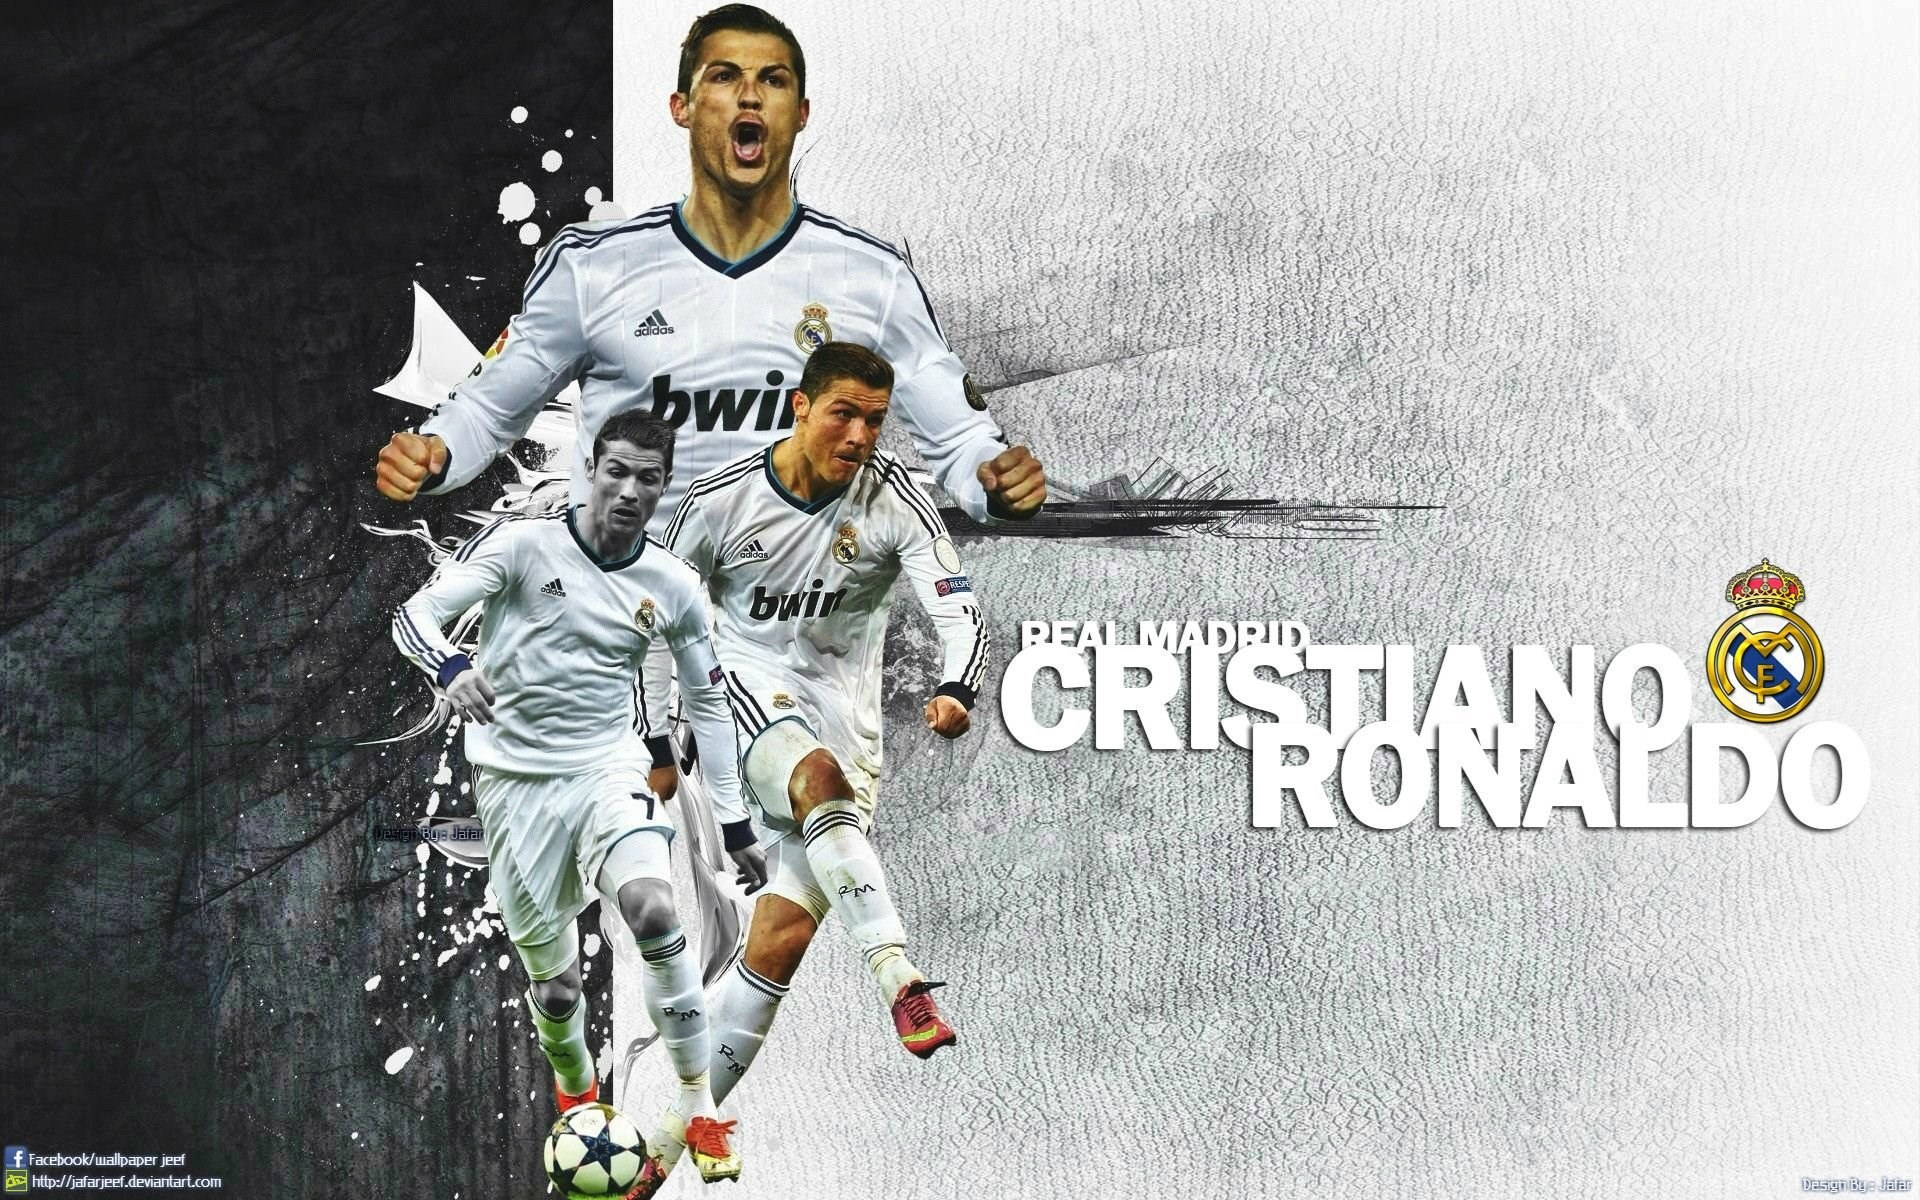 cristiano ronaldo cr7 awesome wallpapers 3852 hd wallpapers site